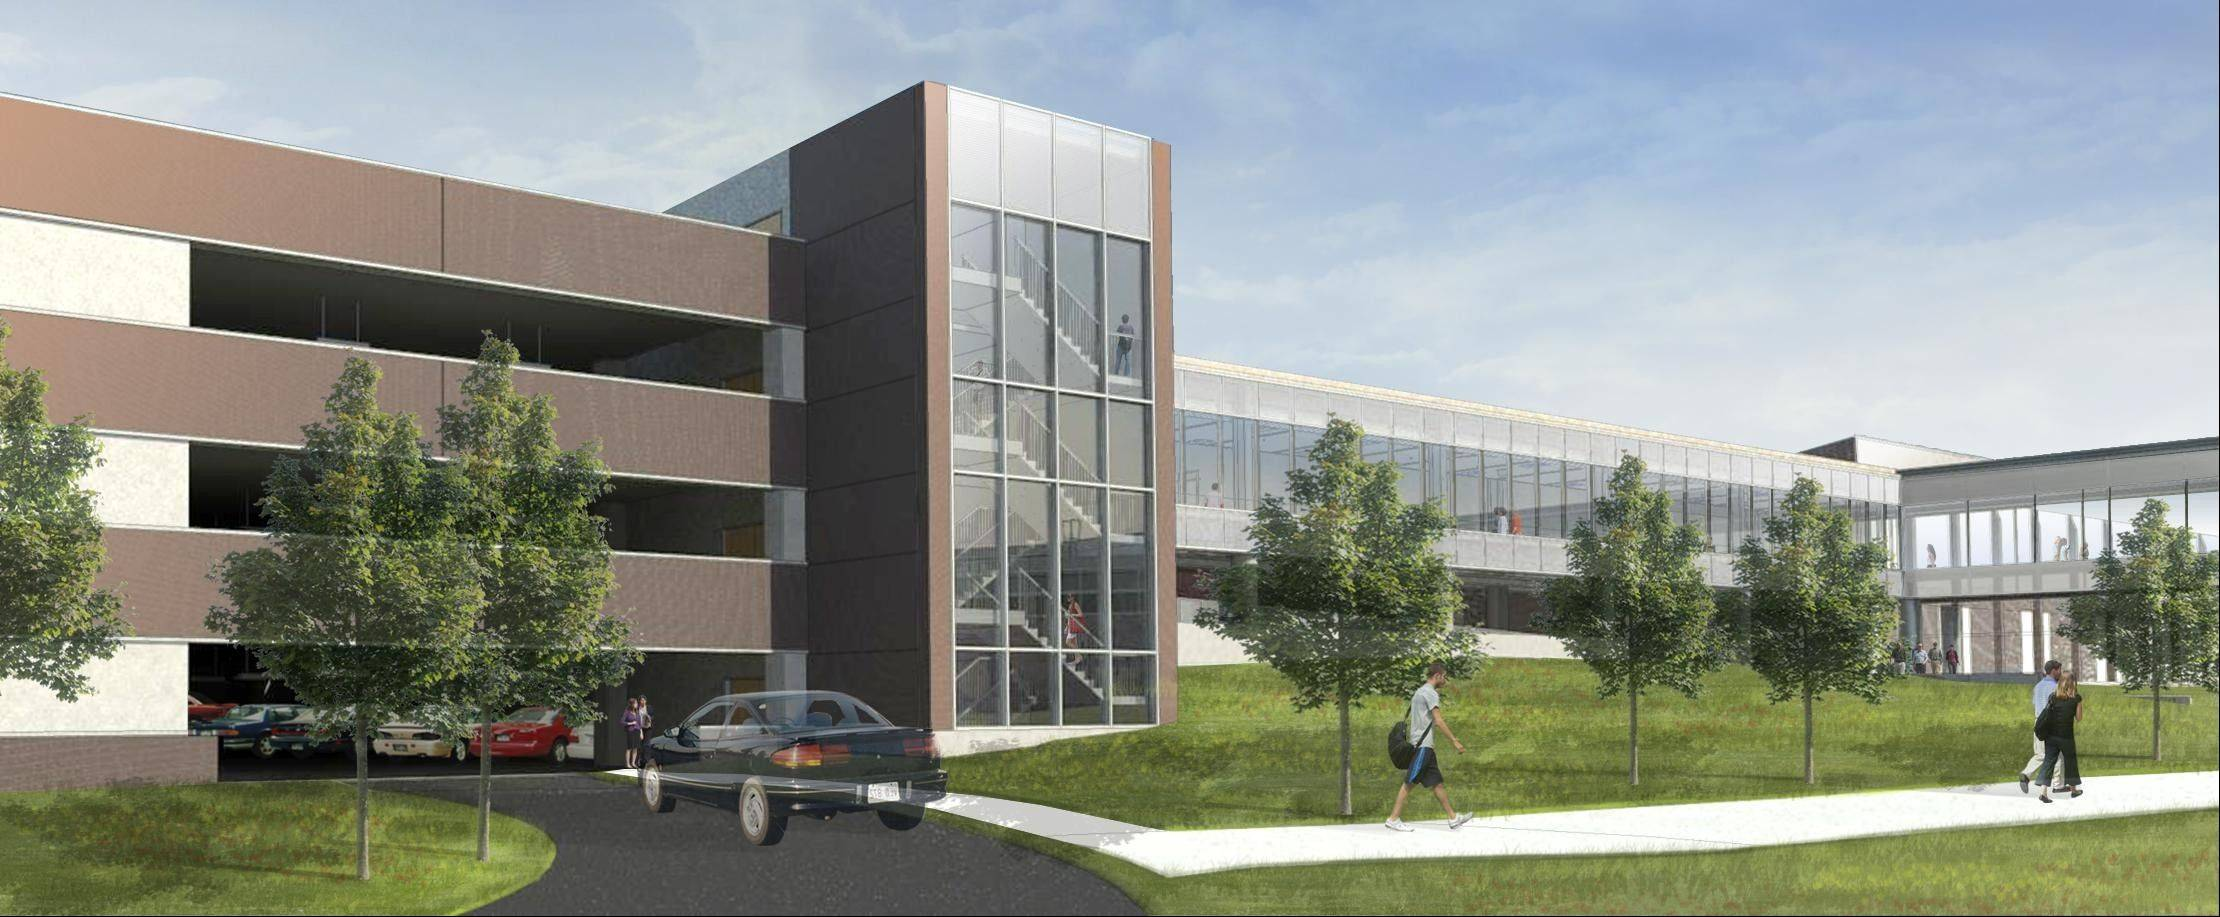 A four-story parking garage will be built at Harper College in Palatine.